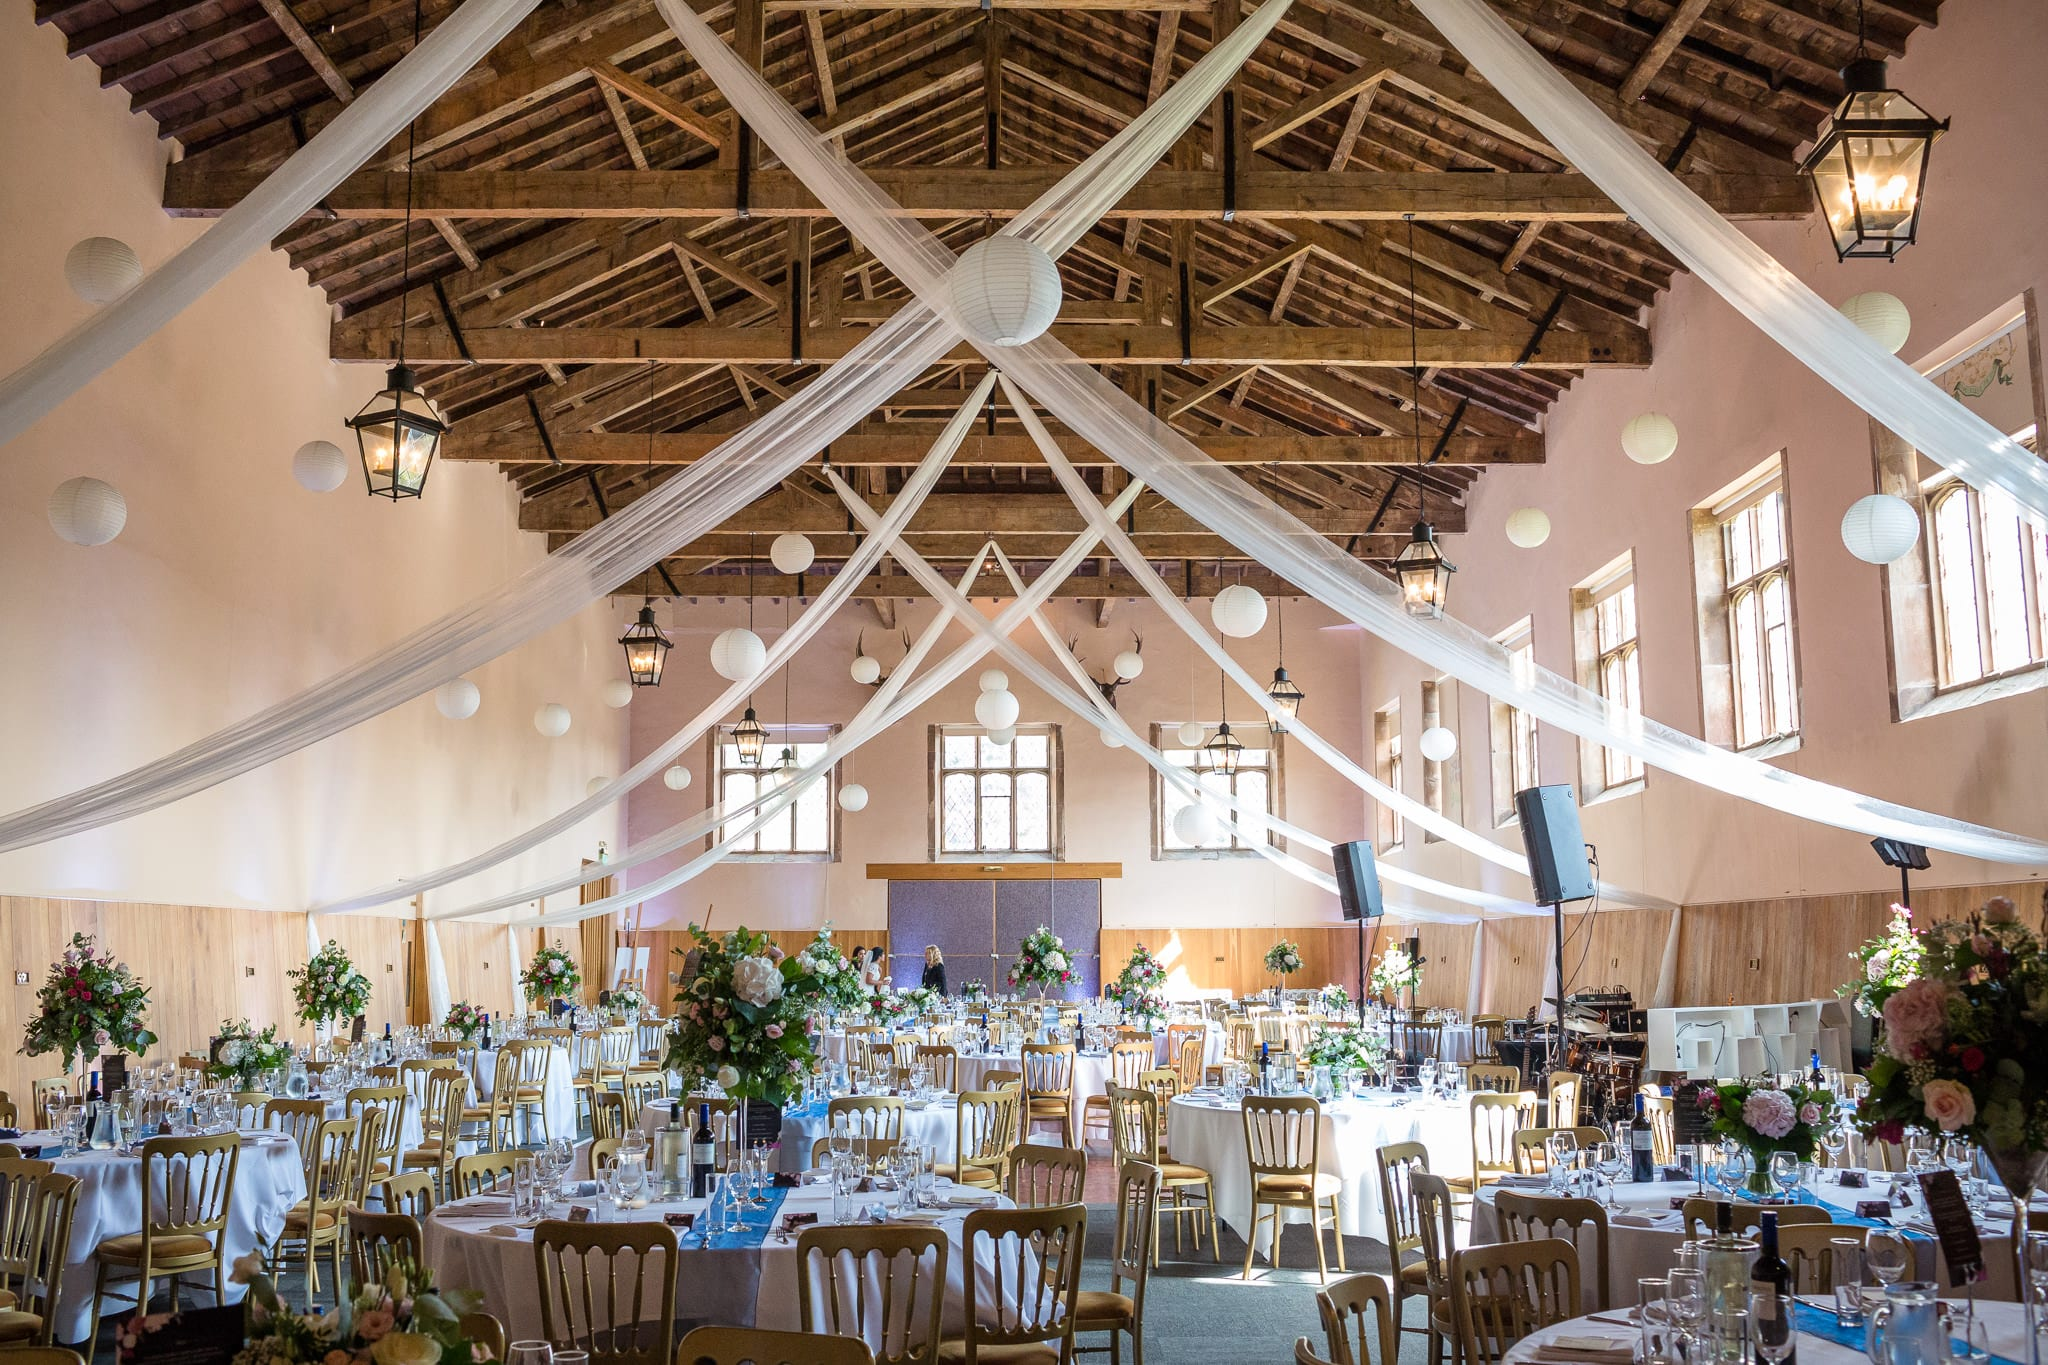 Beautifully decorated Riding School at Stoneleigh Abbey by Stoneleigh Abbey Wedding Photographer, S2 Images